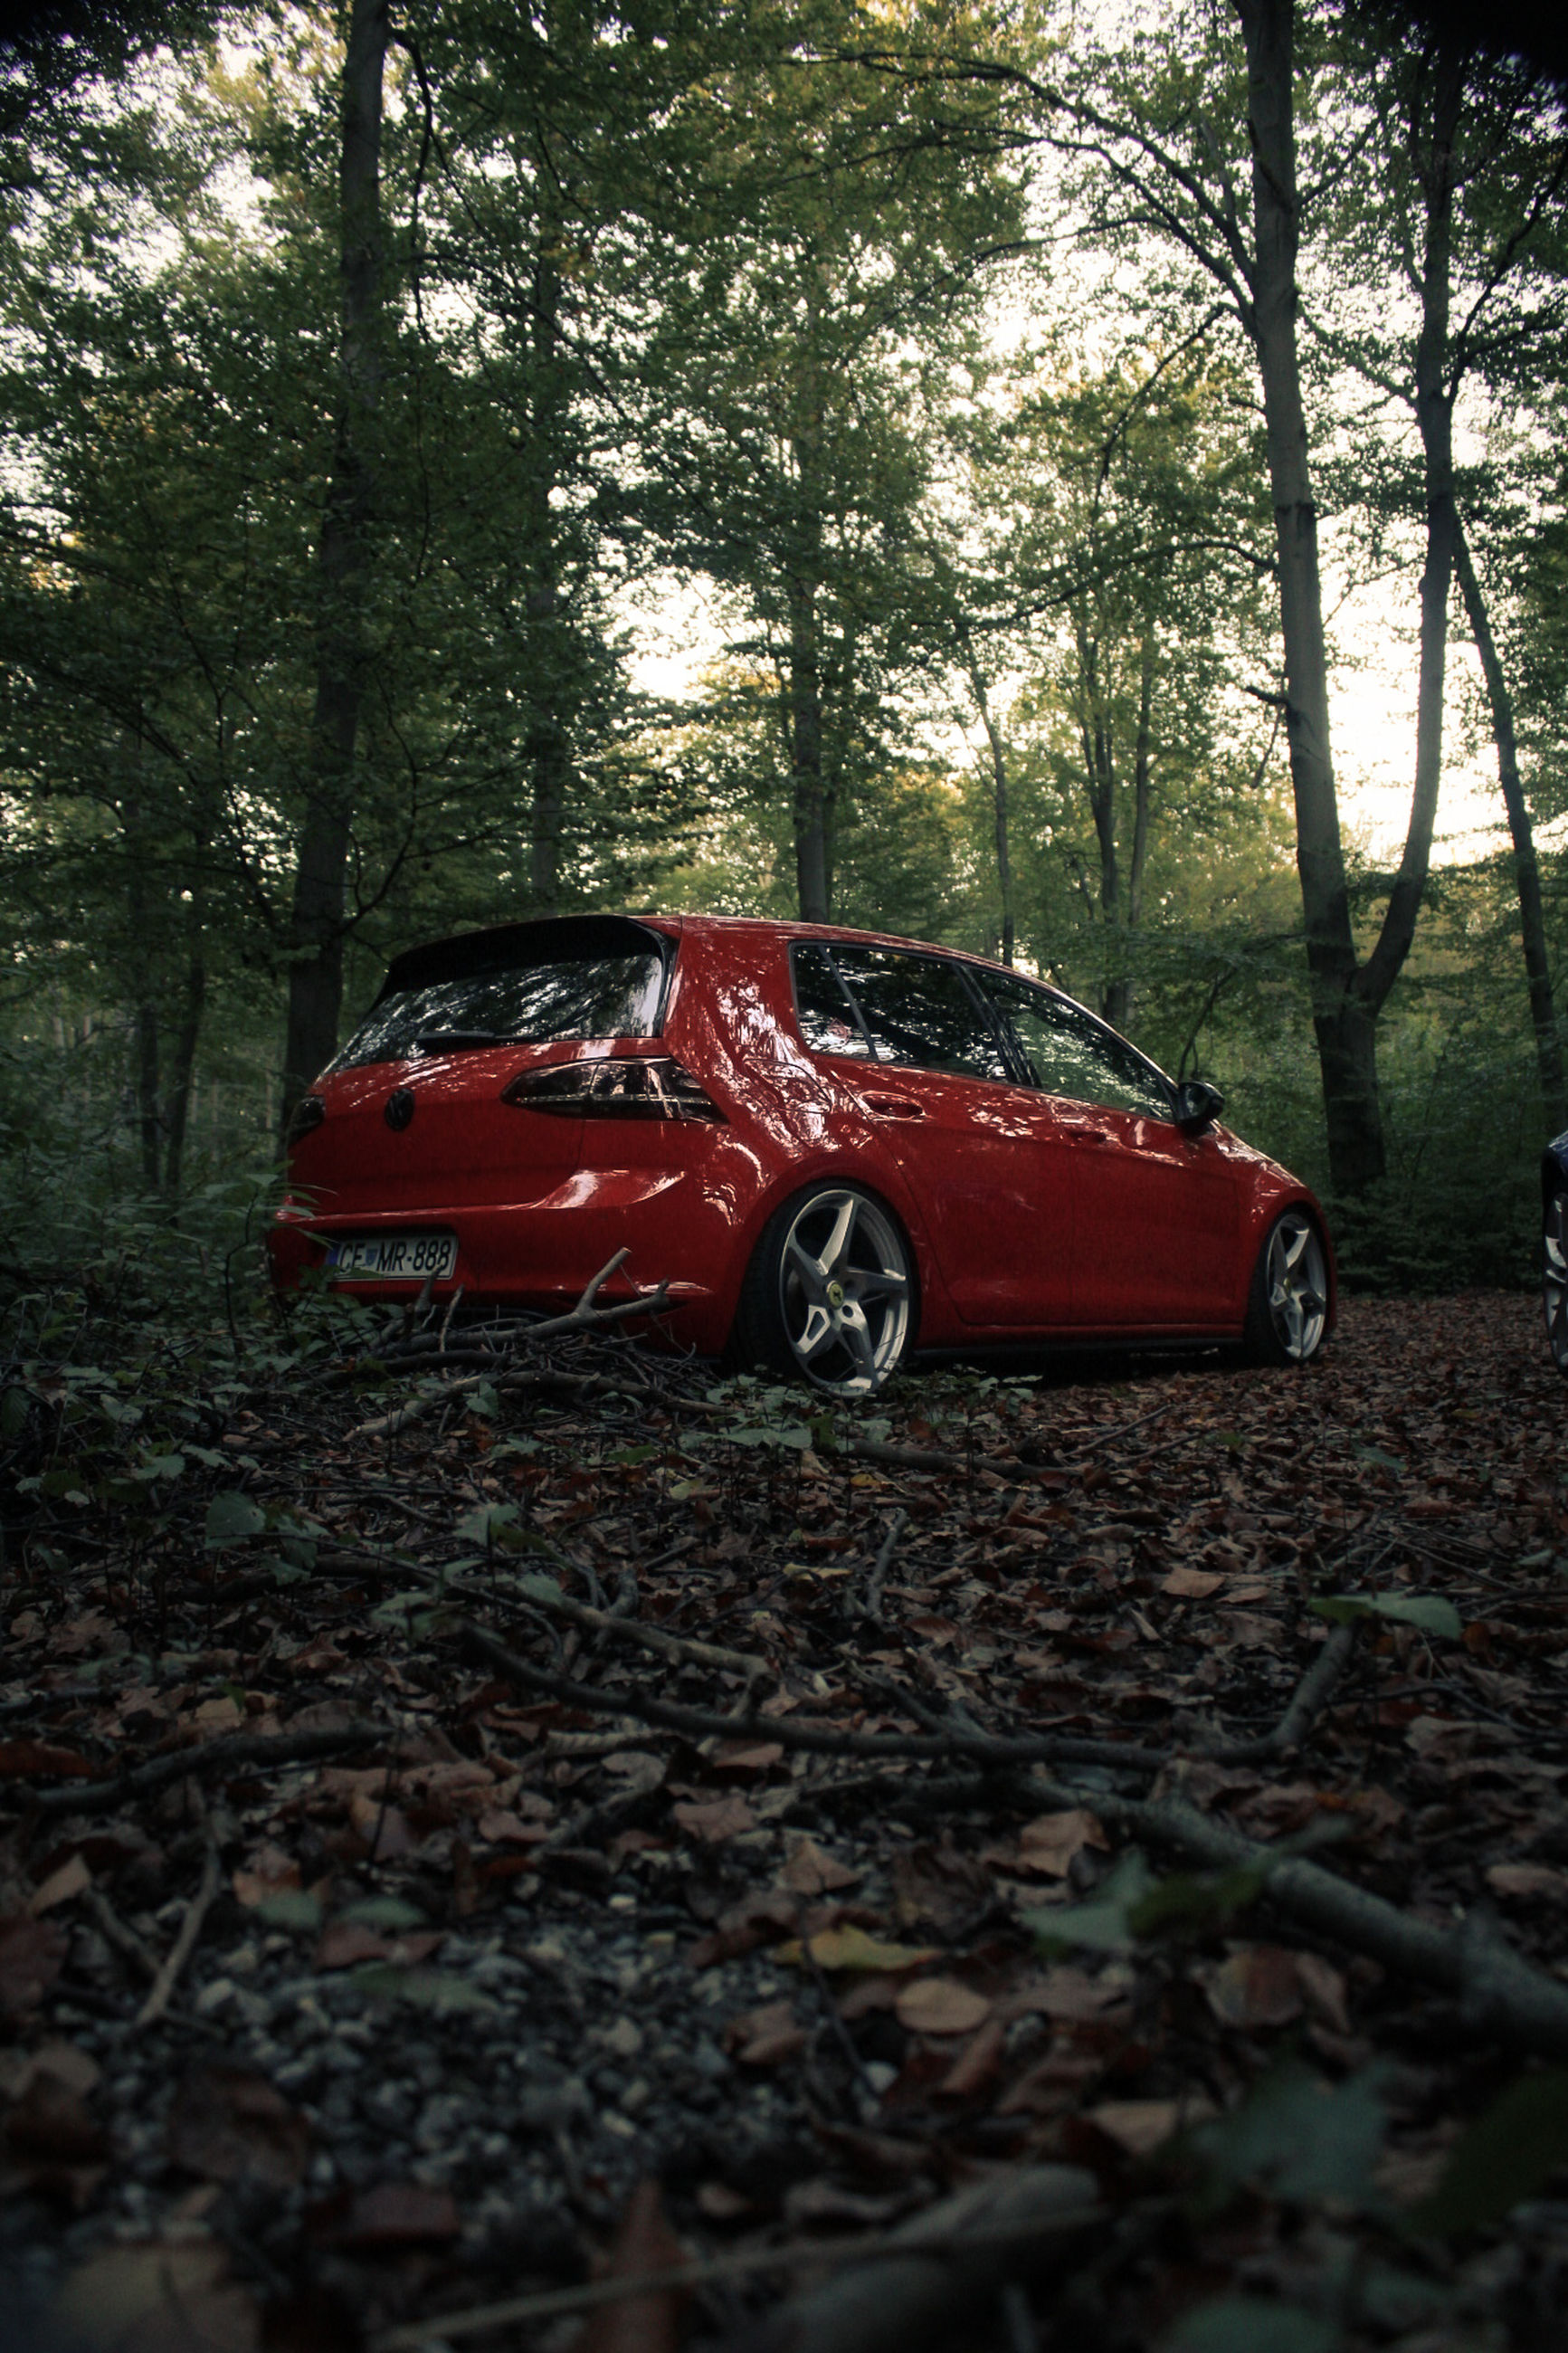 tree, red, mode of transportation, plant, transportation, land, car, land vehicle, motor vehicle, nature, forest, day, no people, plant part, leaf, selective focus, damaged, woodland, outdoors, field, ruined, demolished